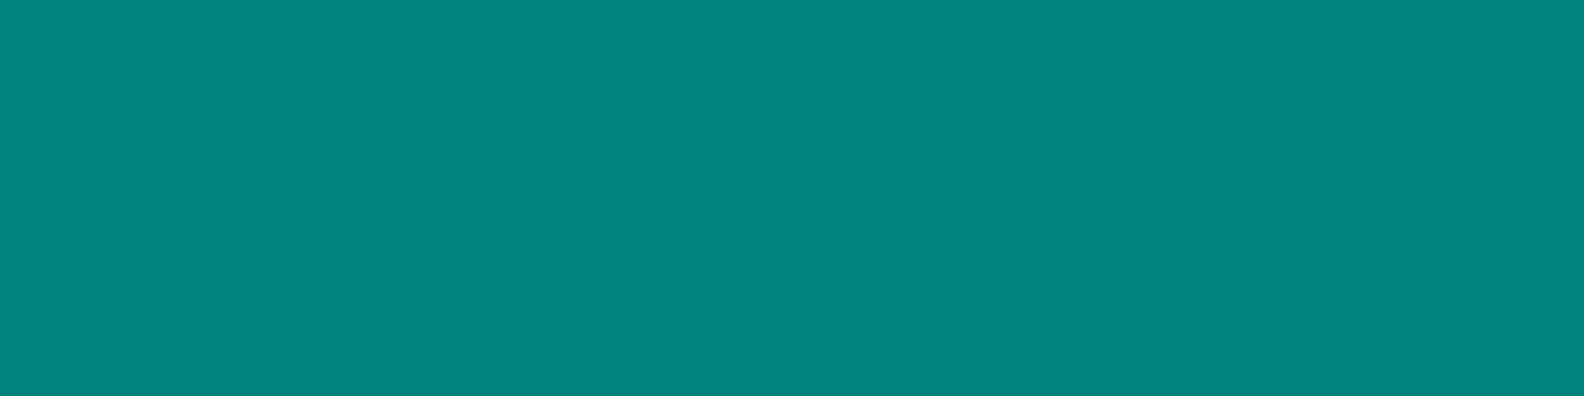 1584x396 Teal Green Solid Color Background